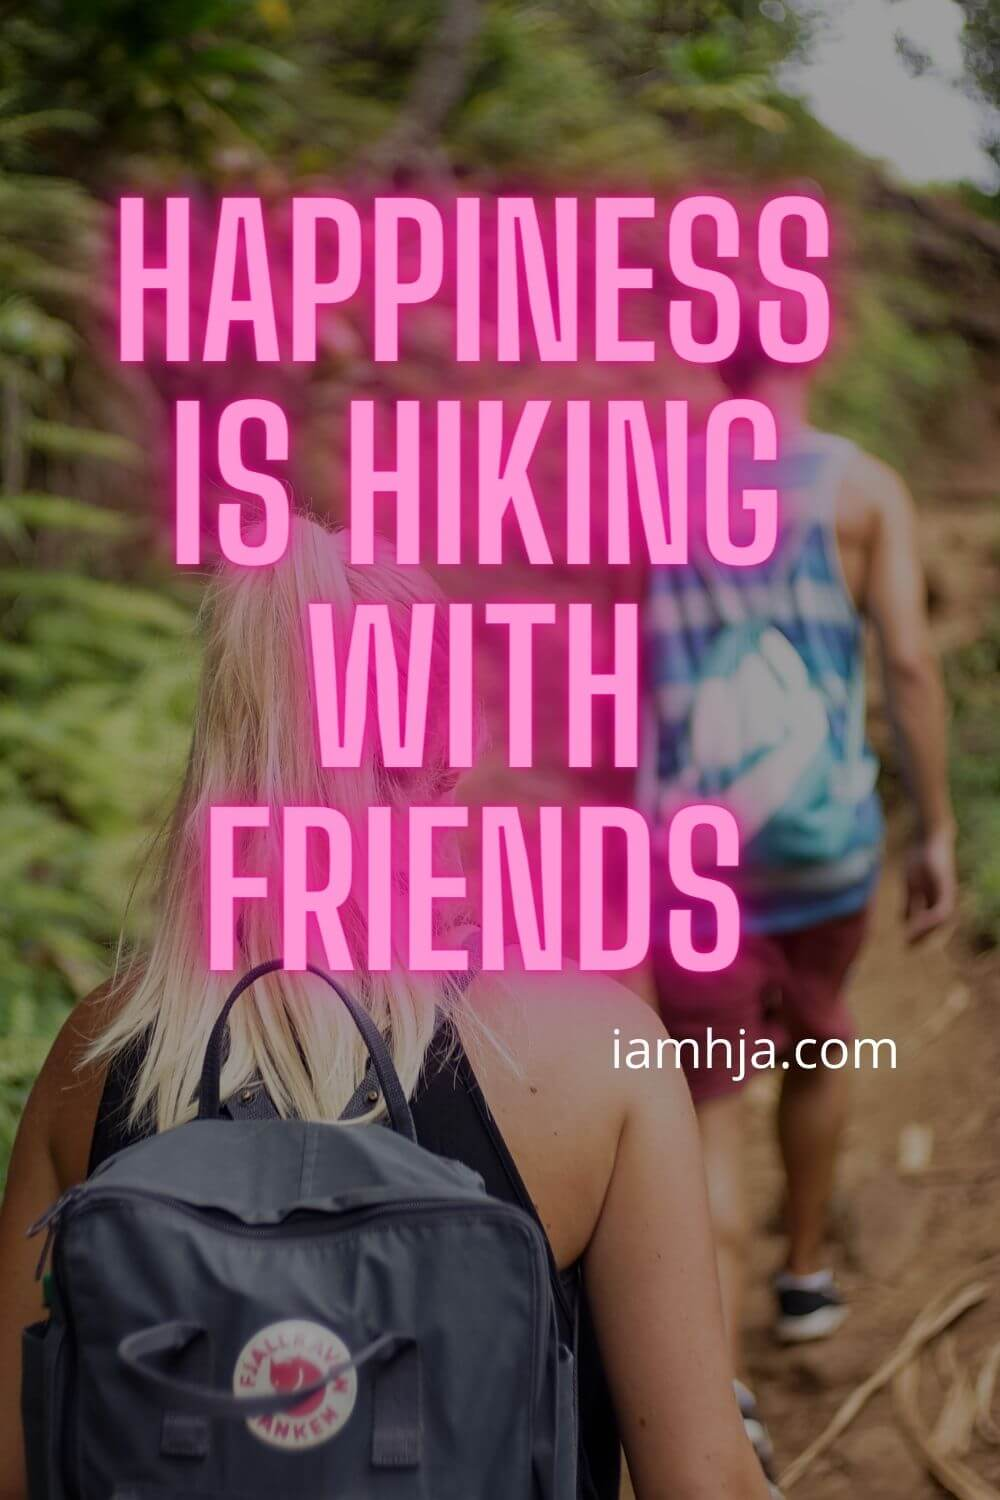 Happiness is hiking with friends.